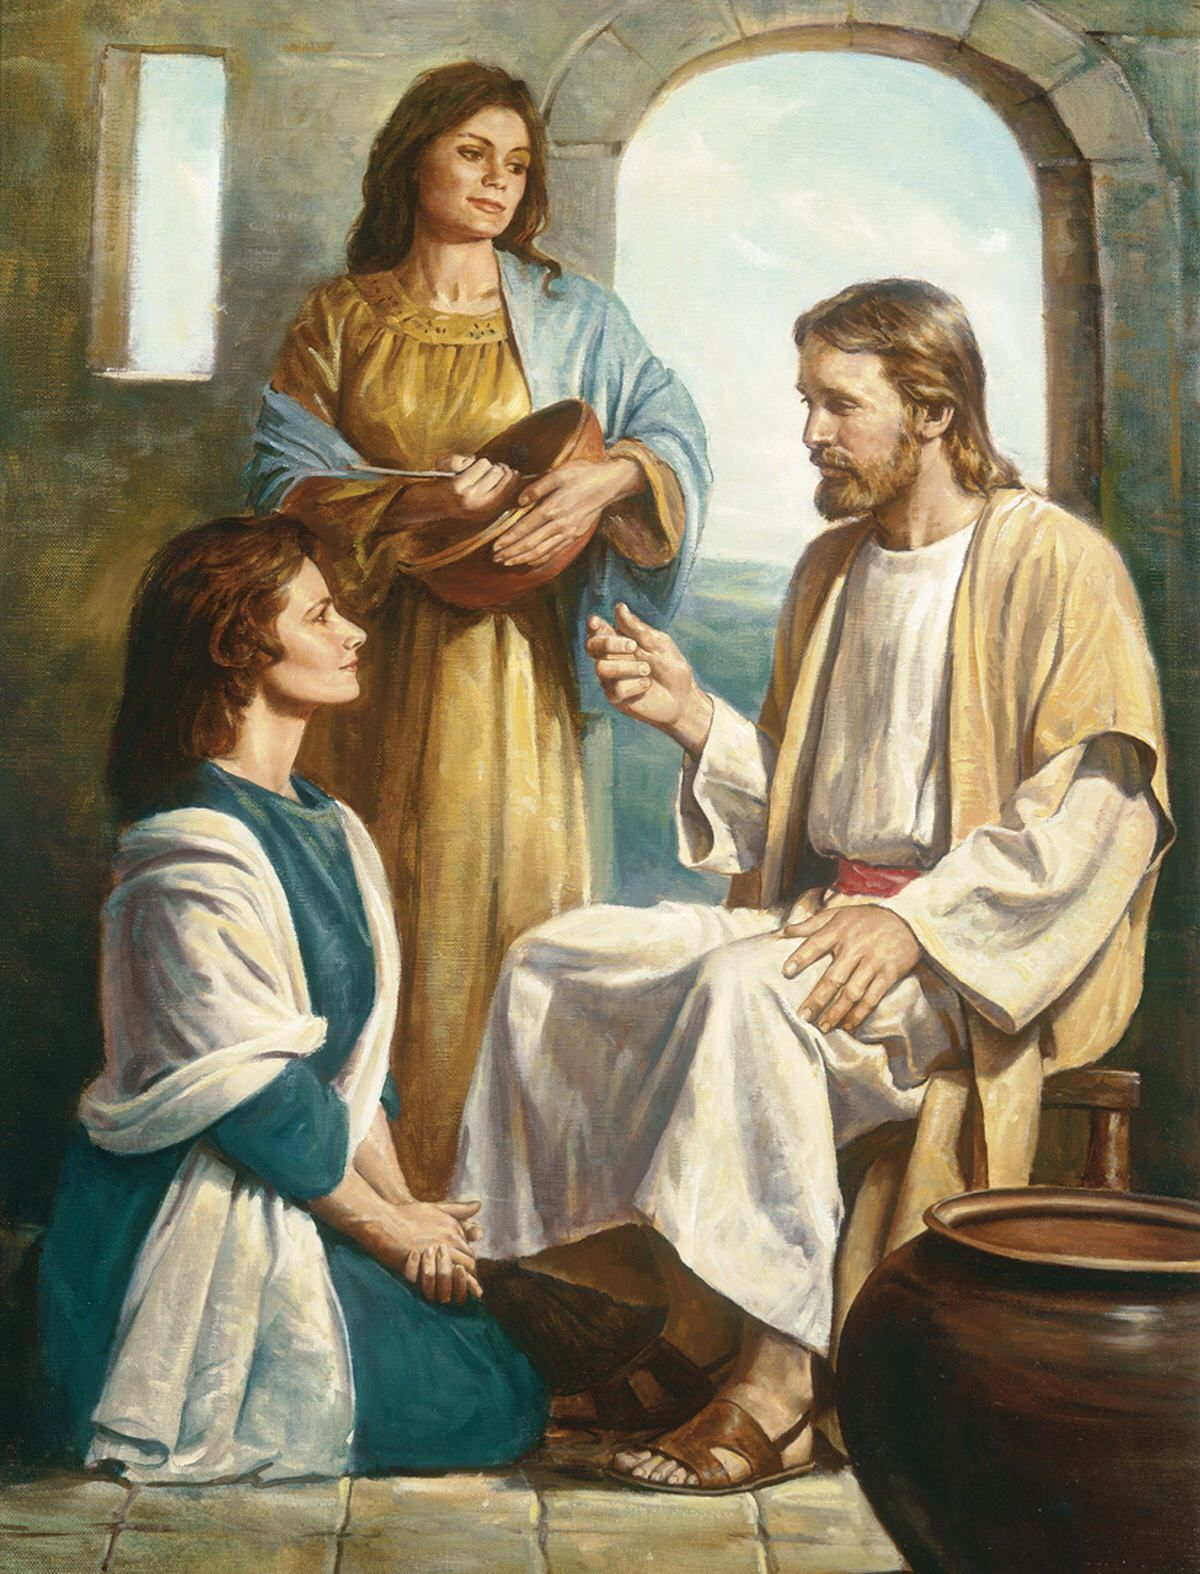 When Jesus visited the house of the sisters Mary and Martha and their brother Lazarus in the village of Bethany, He was welcomed warmly (Luke 10:38-42).